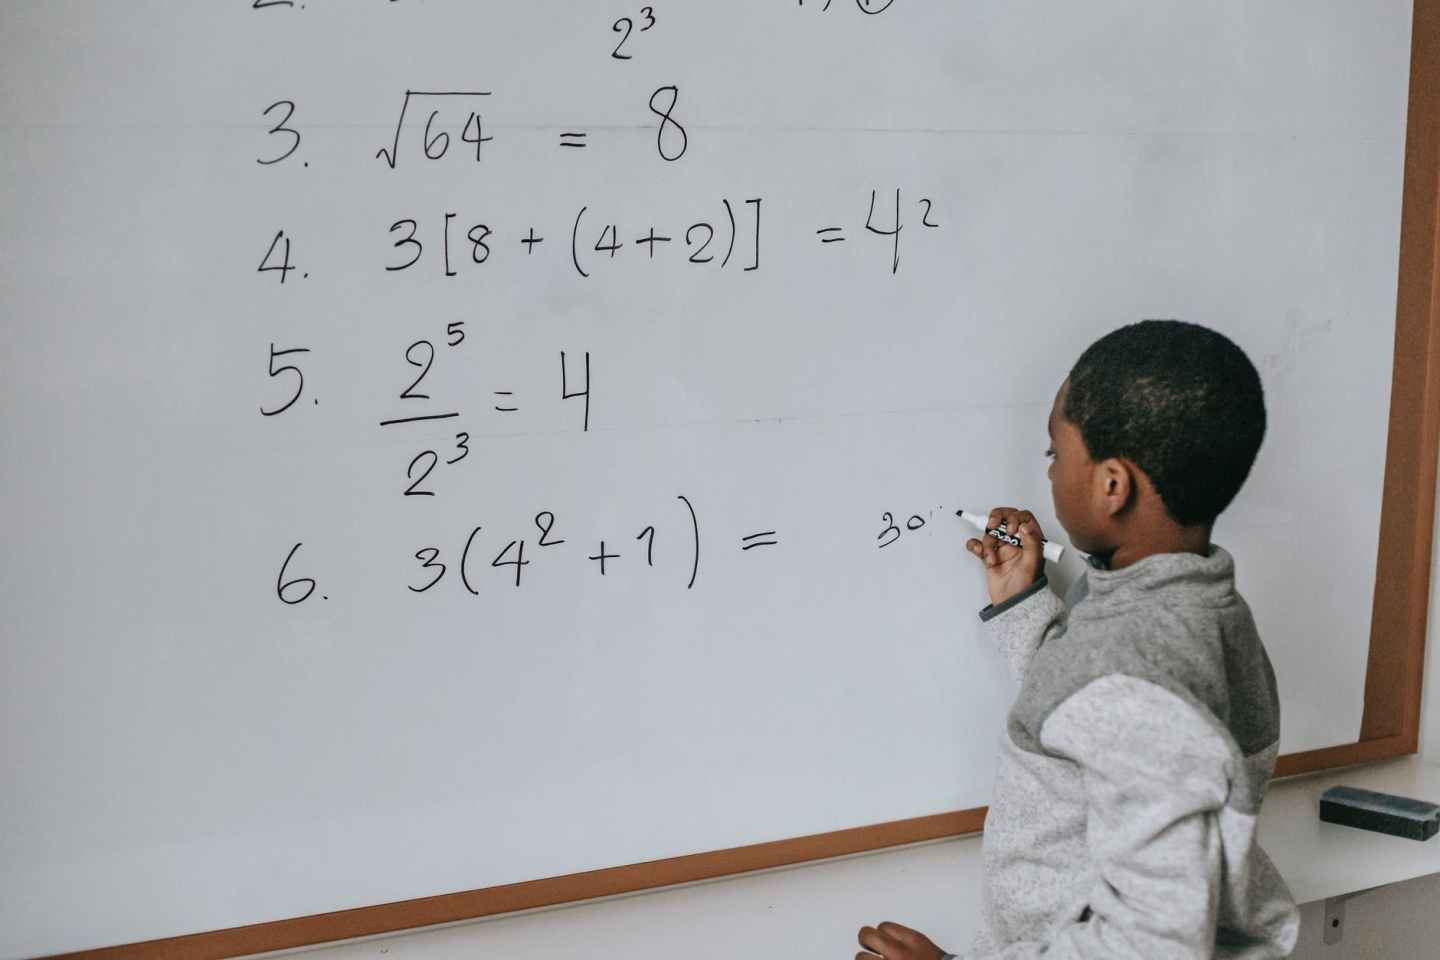 black schoolboy solving math examples on whiteboard in classroom